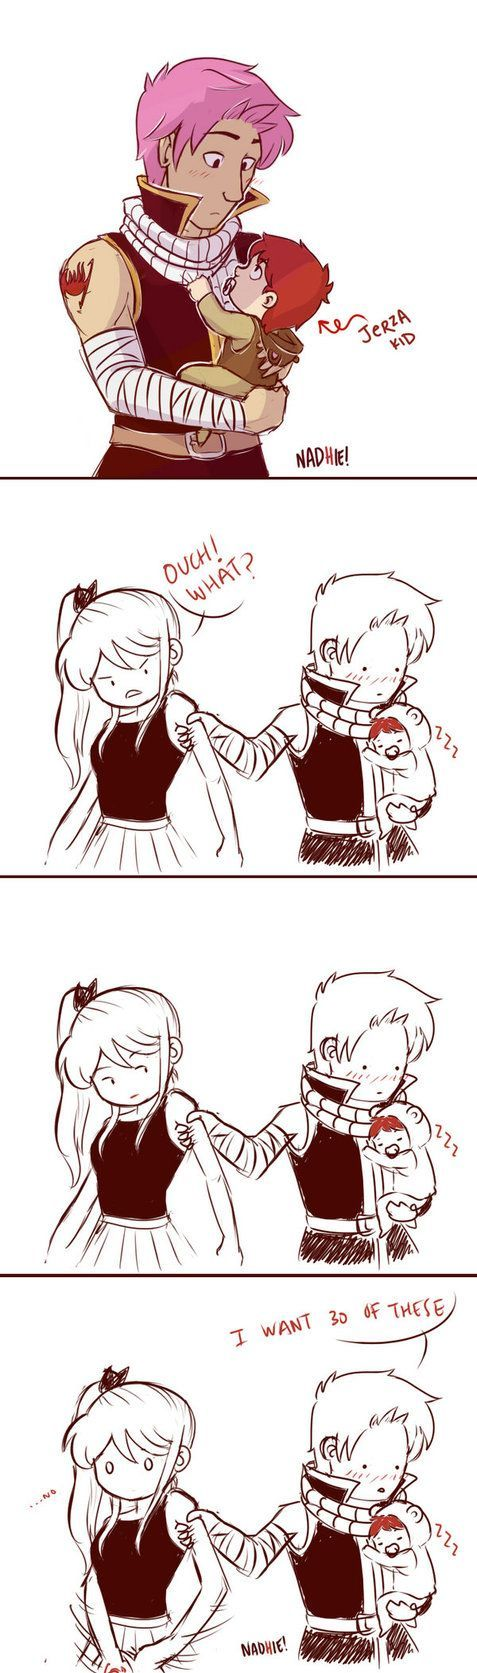 Natsu and Lucy: